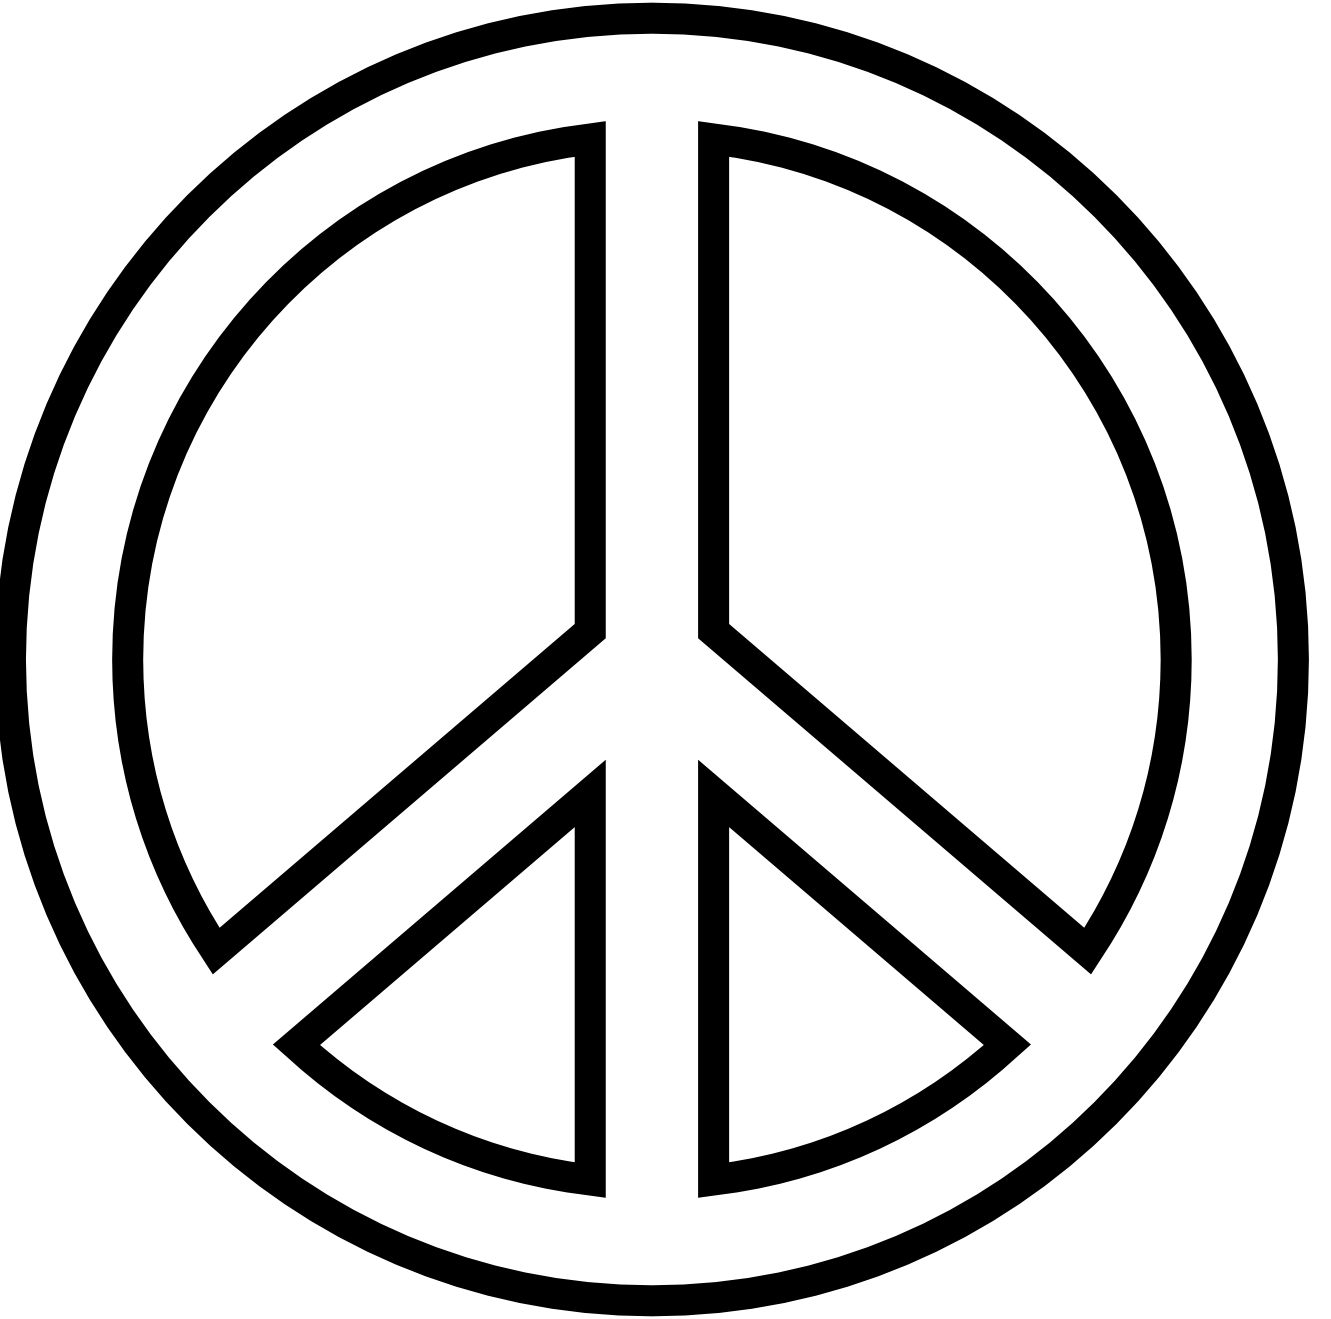 Peace Sign Clipart Black And White Clipart Panda